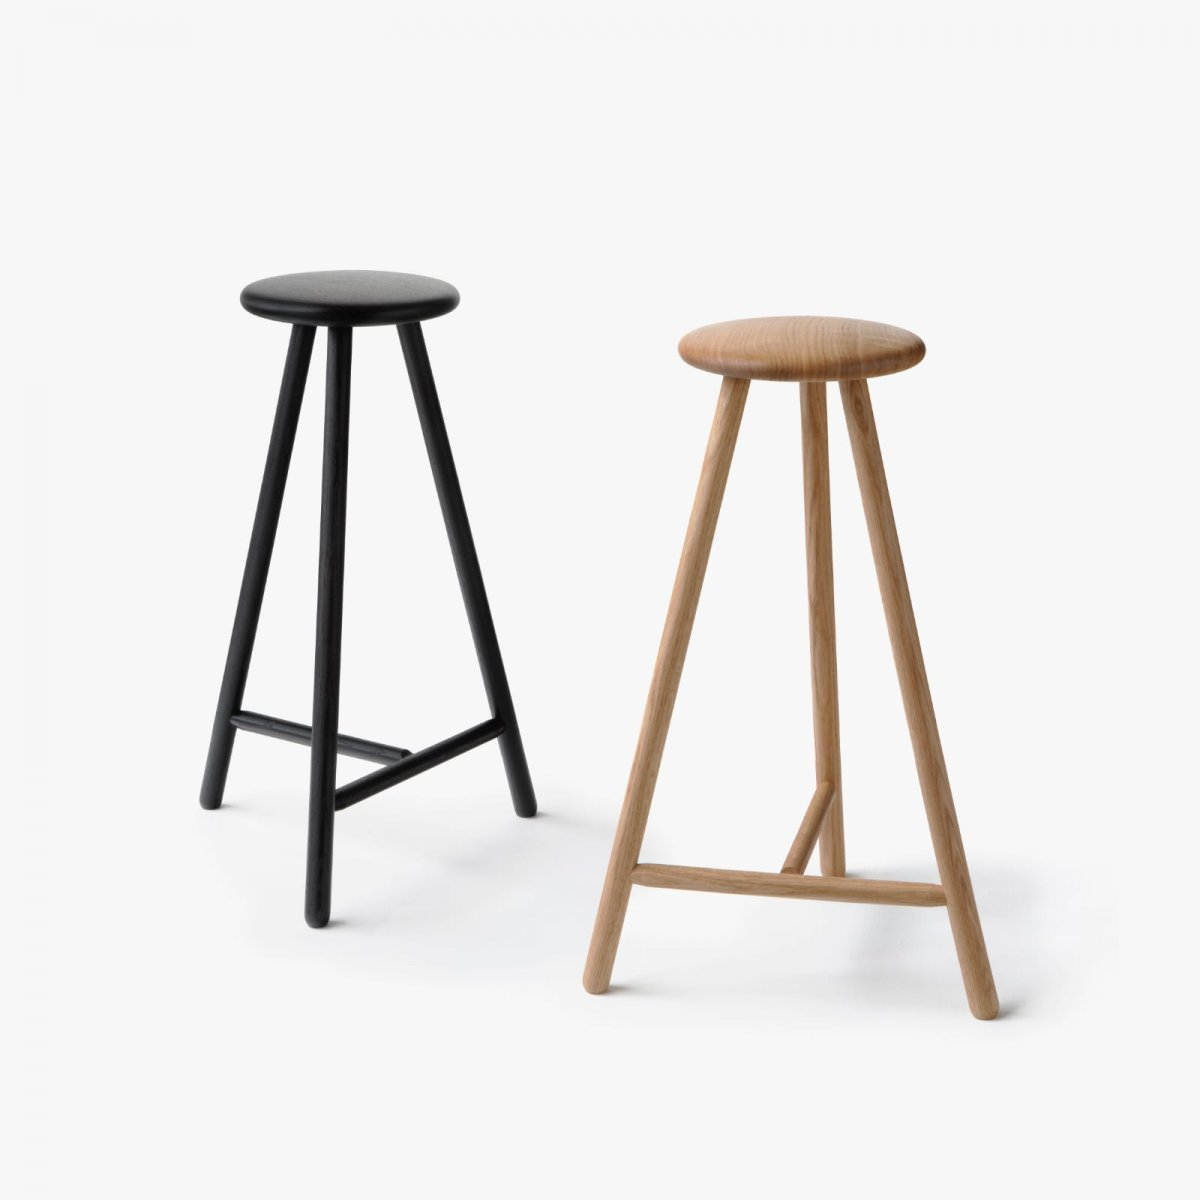 Perch Stool, natural wood oil and black stain.